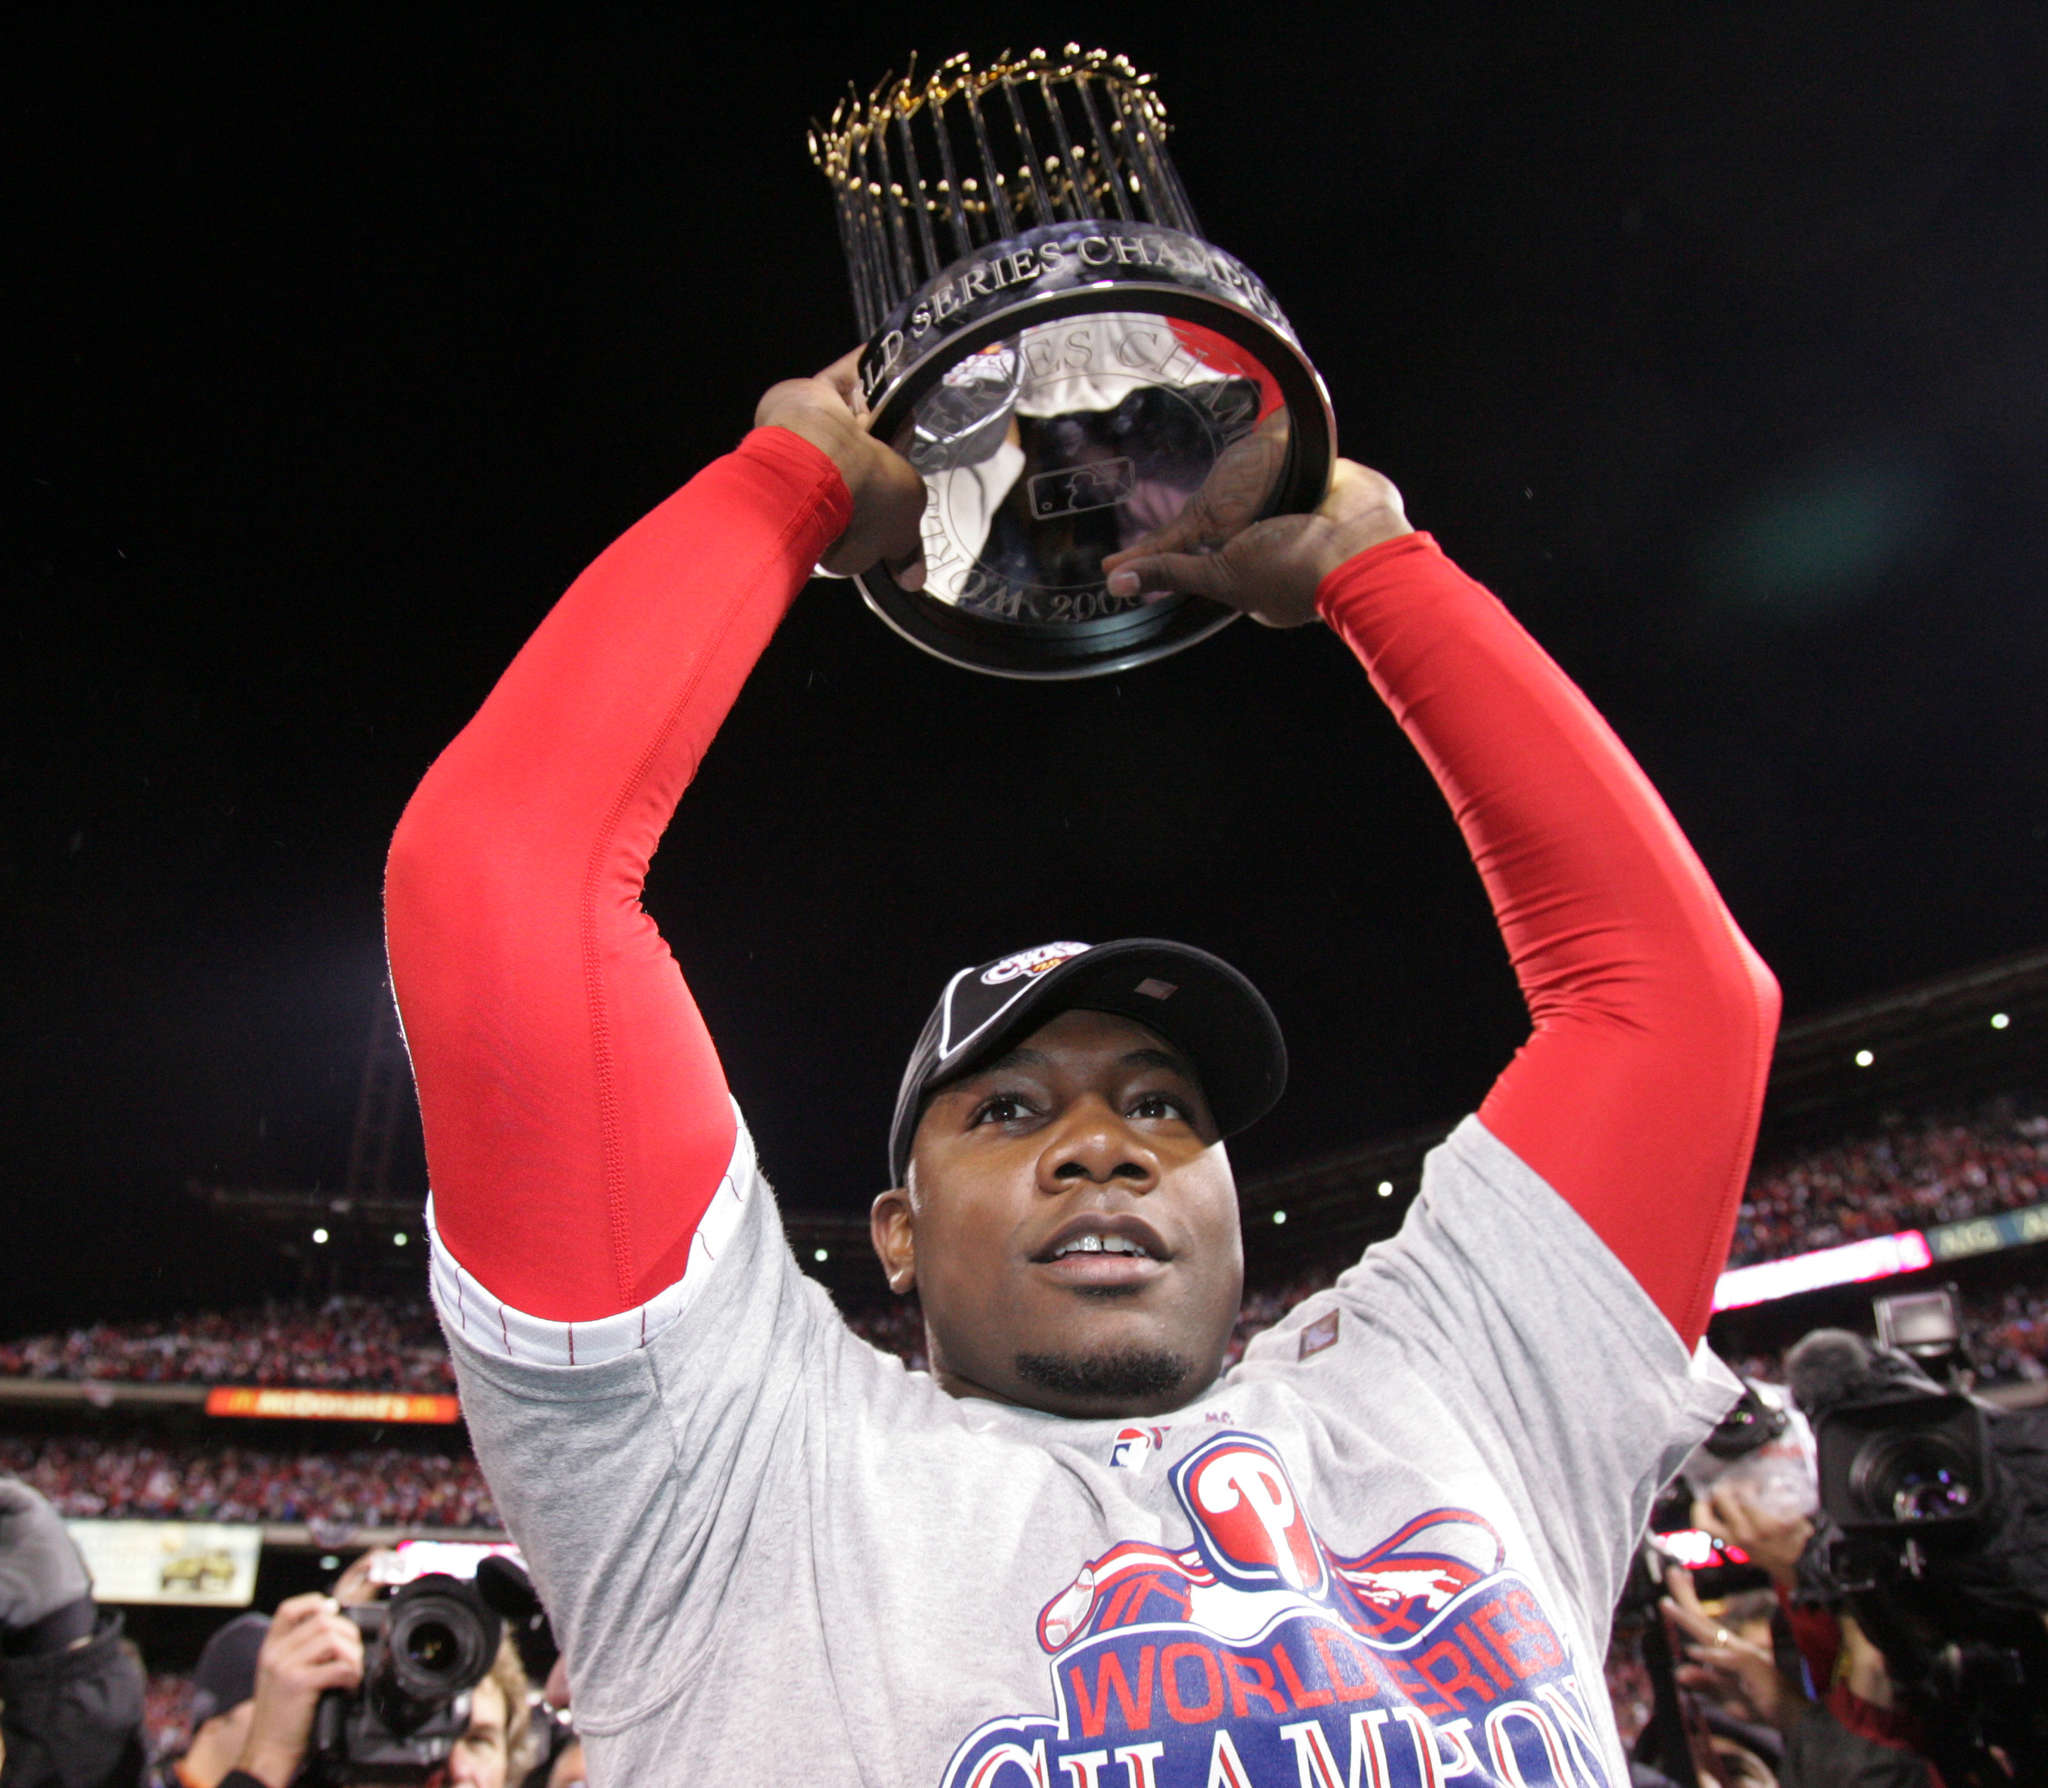 Ryan Howard holds up the World Series trophy in 2008.